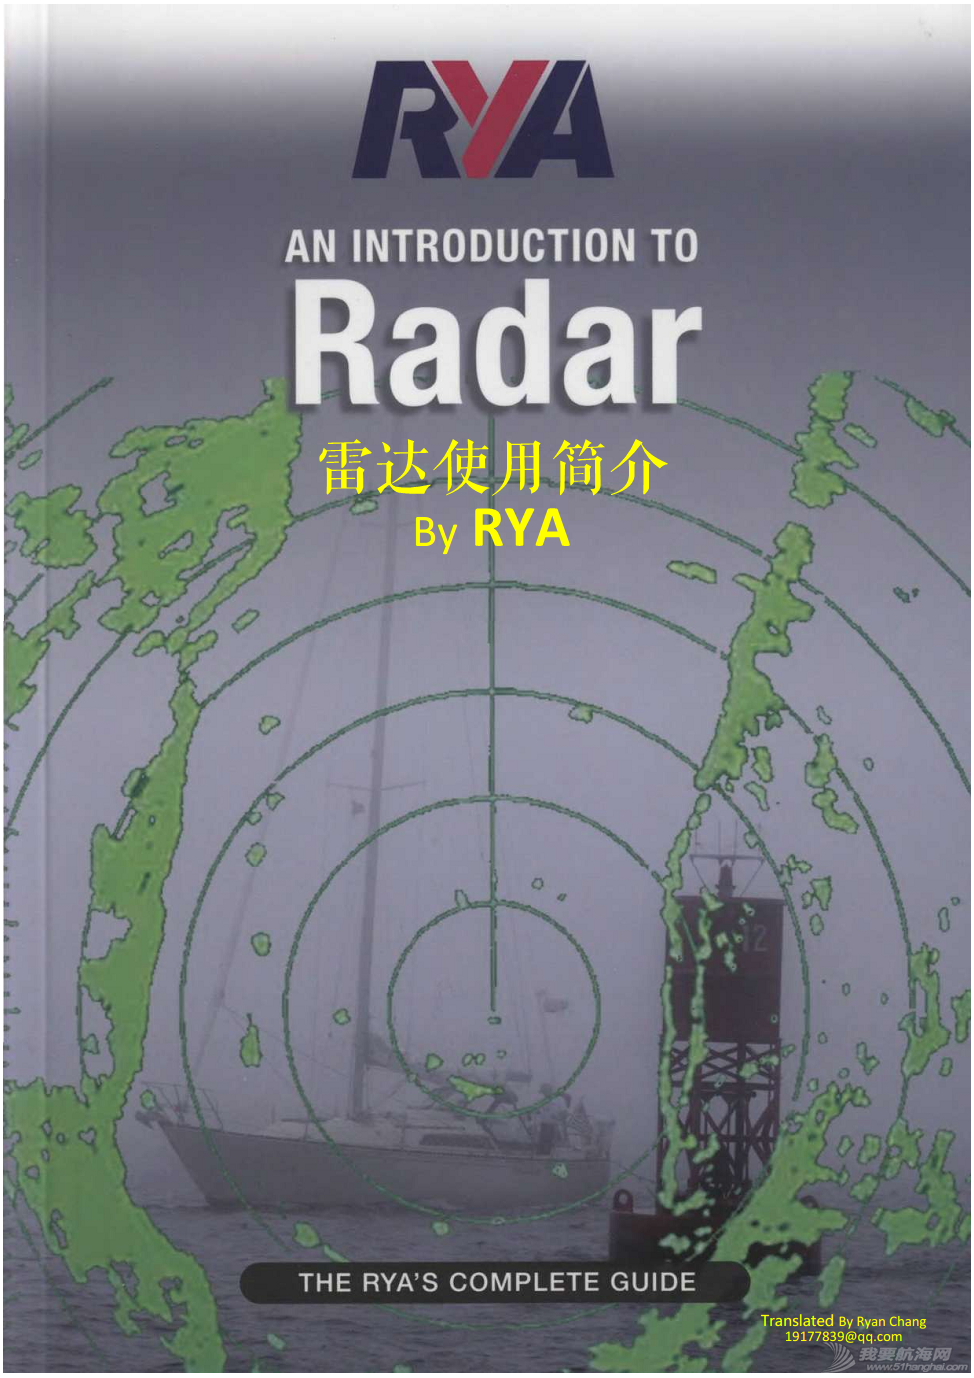 小伙伴,英文版,著作权,中文,帆船 ©RYA《雷达使用简介》An introduction to Radar.完稿 1